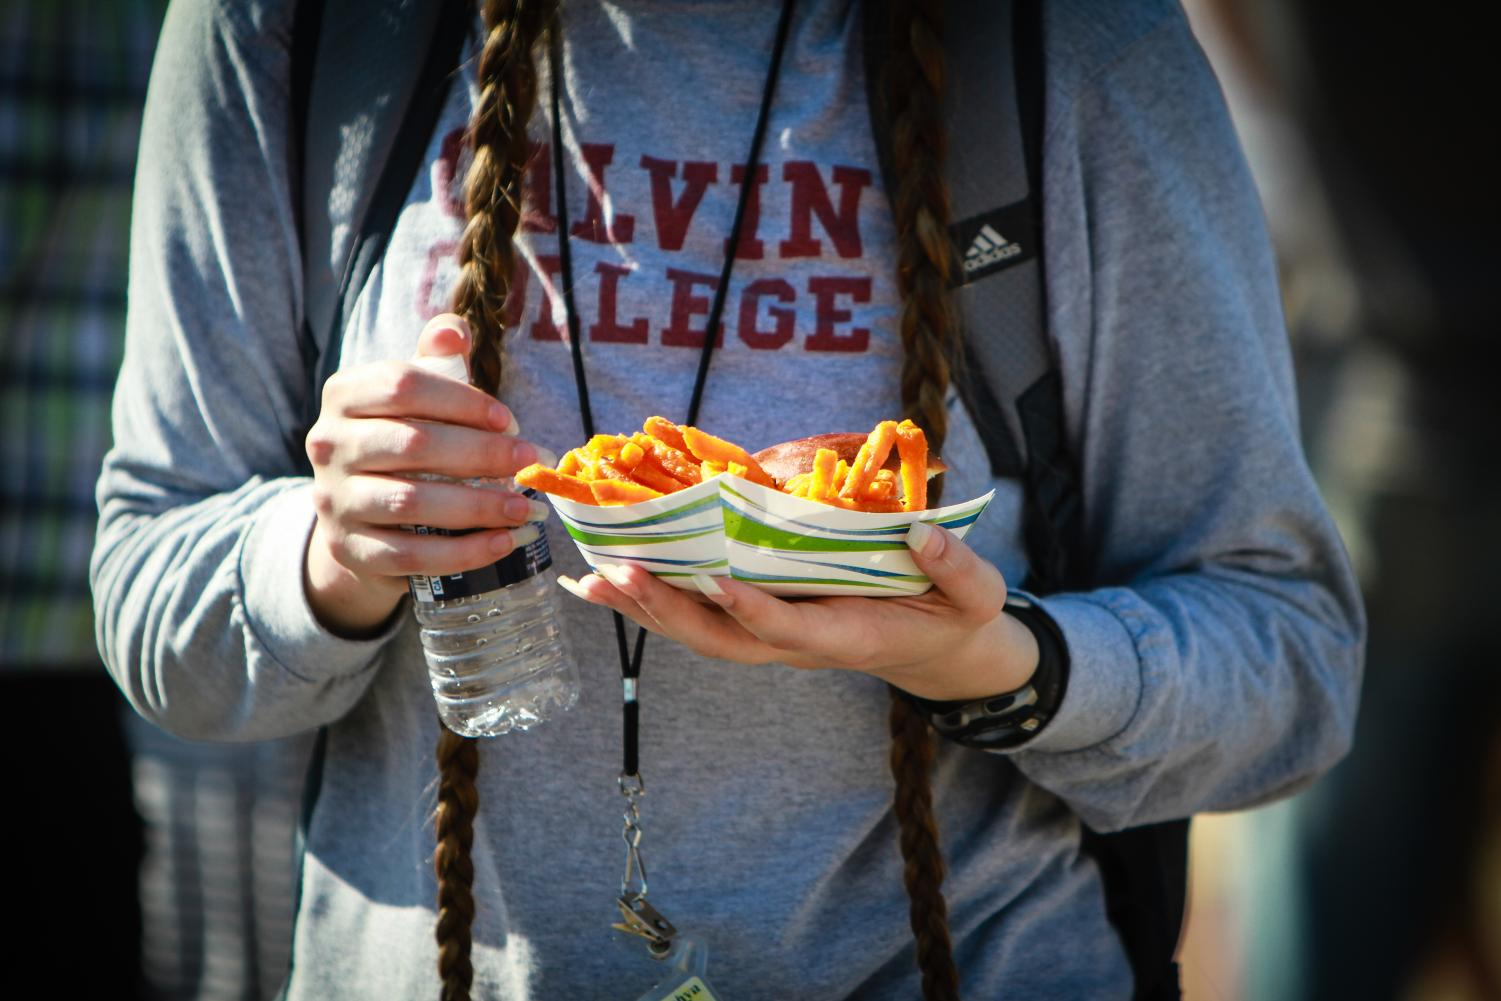 A+guest+snacks+on+one+of+the+food+options+while+sporting+a+vintage+Calvin+College+shirt.